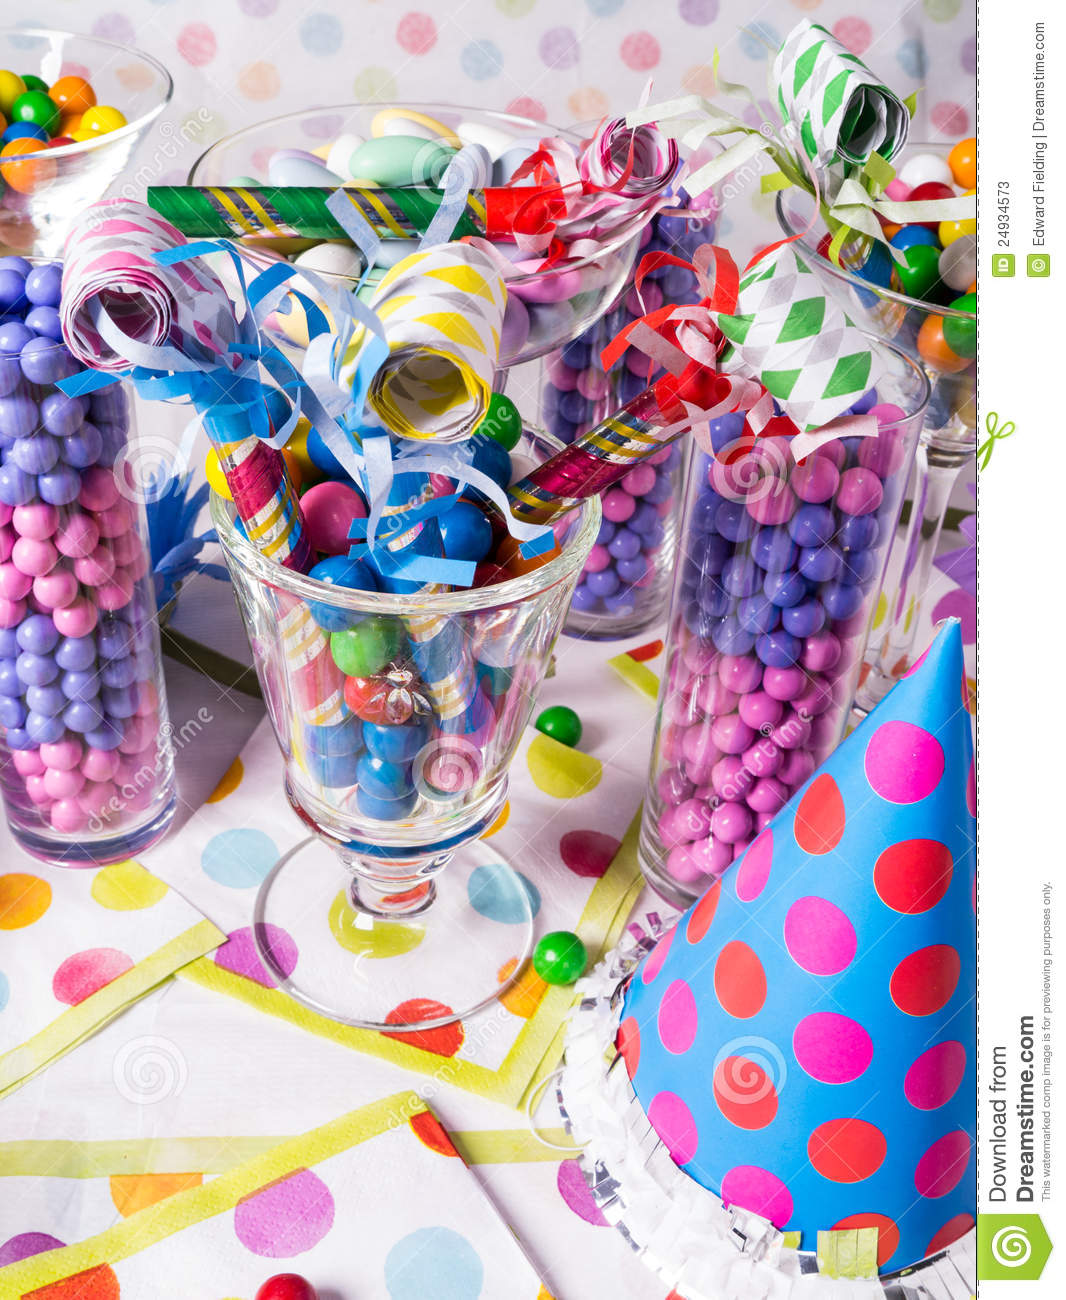 Birthday Party Candy Station With Party Blowers Stock Image